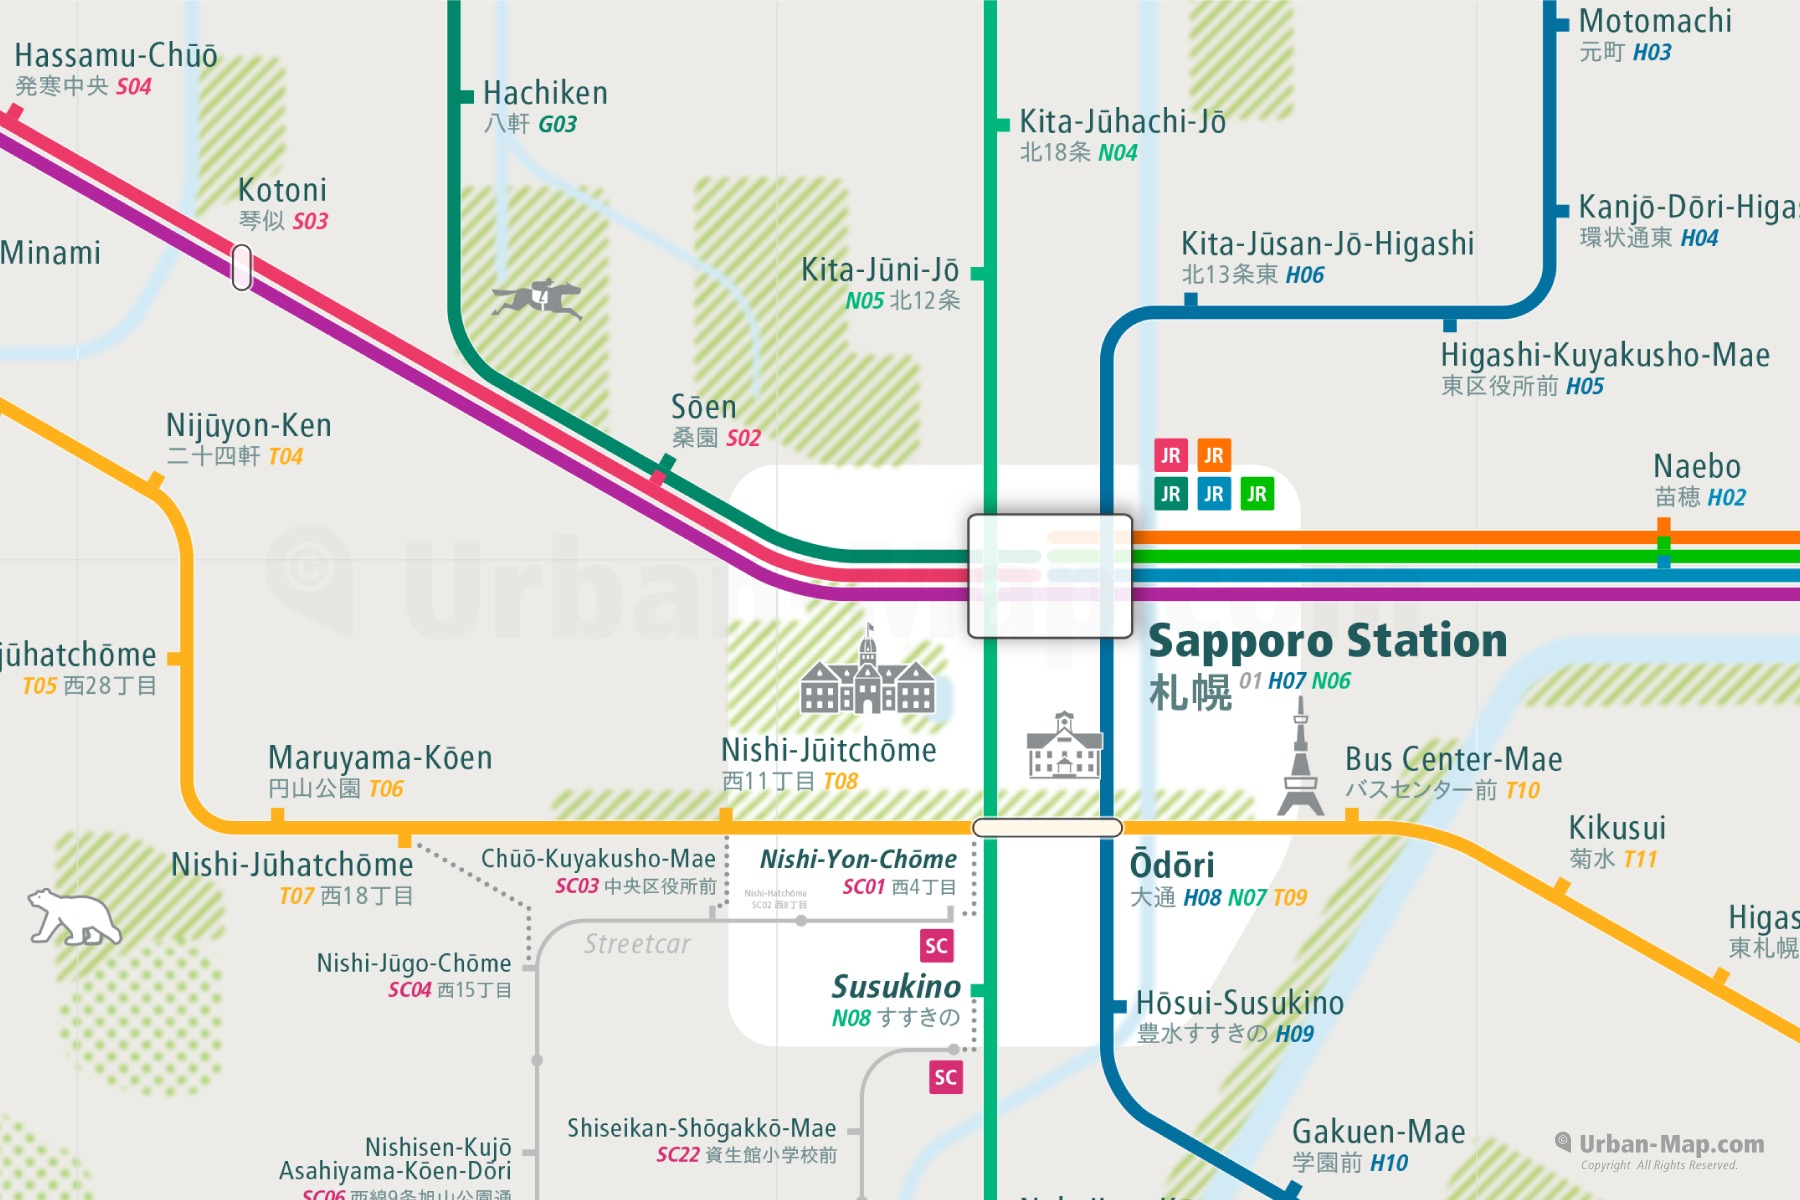 Sapporo Subway Map.Sapporo Rail Map A Smart City Guide Map Even Offline